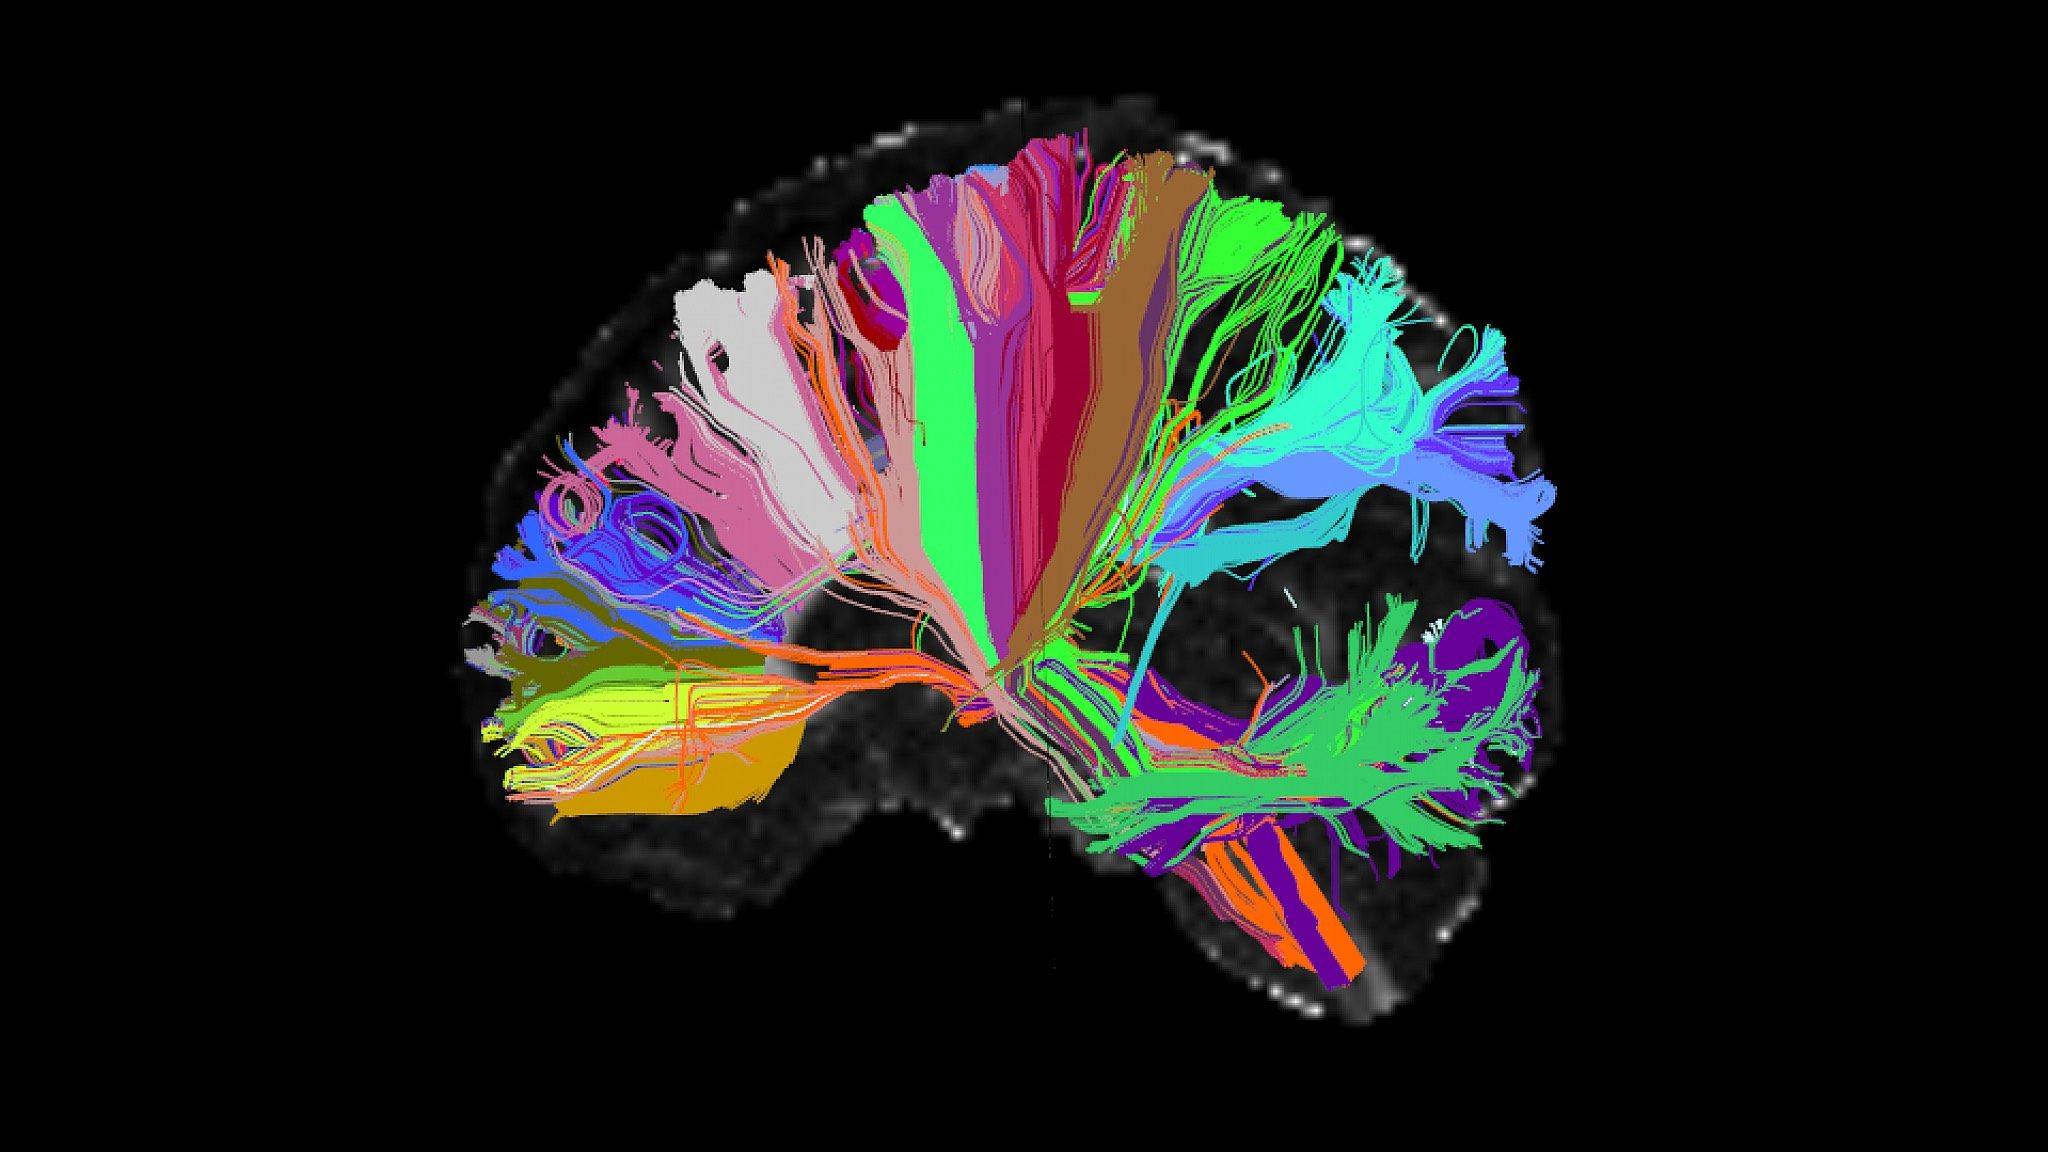 Our brains instantly make two copies of each memory nova next pbs one is filed away in the hippocampus the center of short term memories while the other is stored in cortex where our long term memories reside ccuart Choice Image